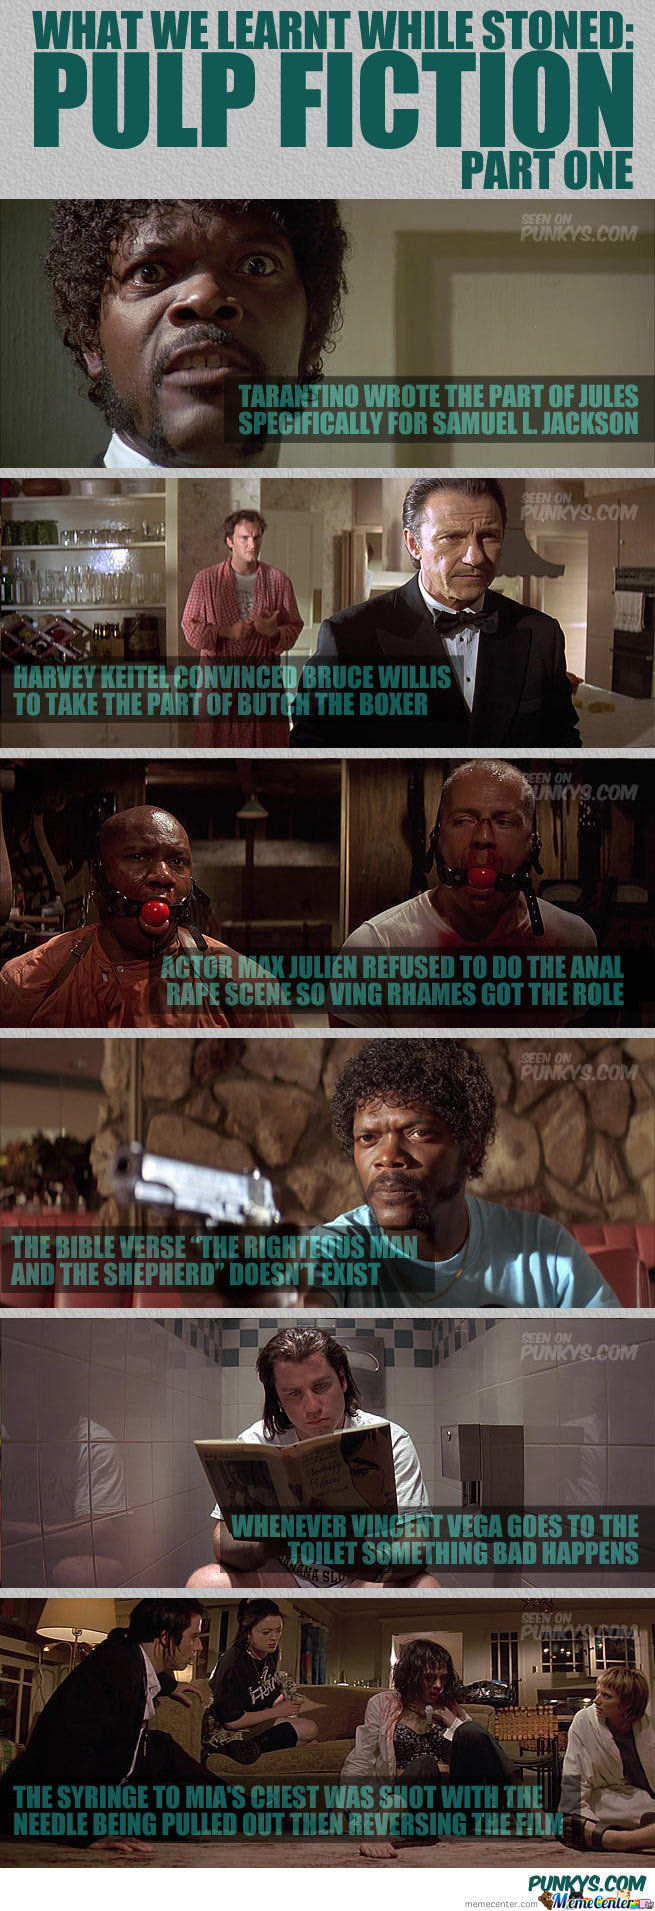 Pulp Fiction Facts